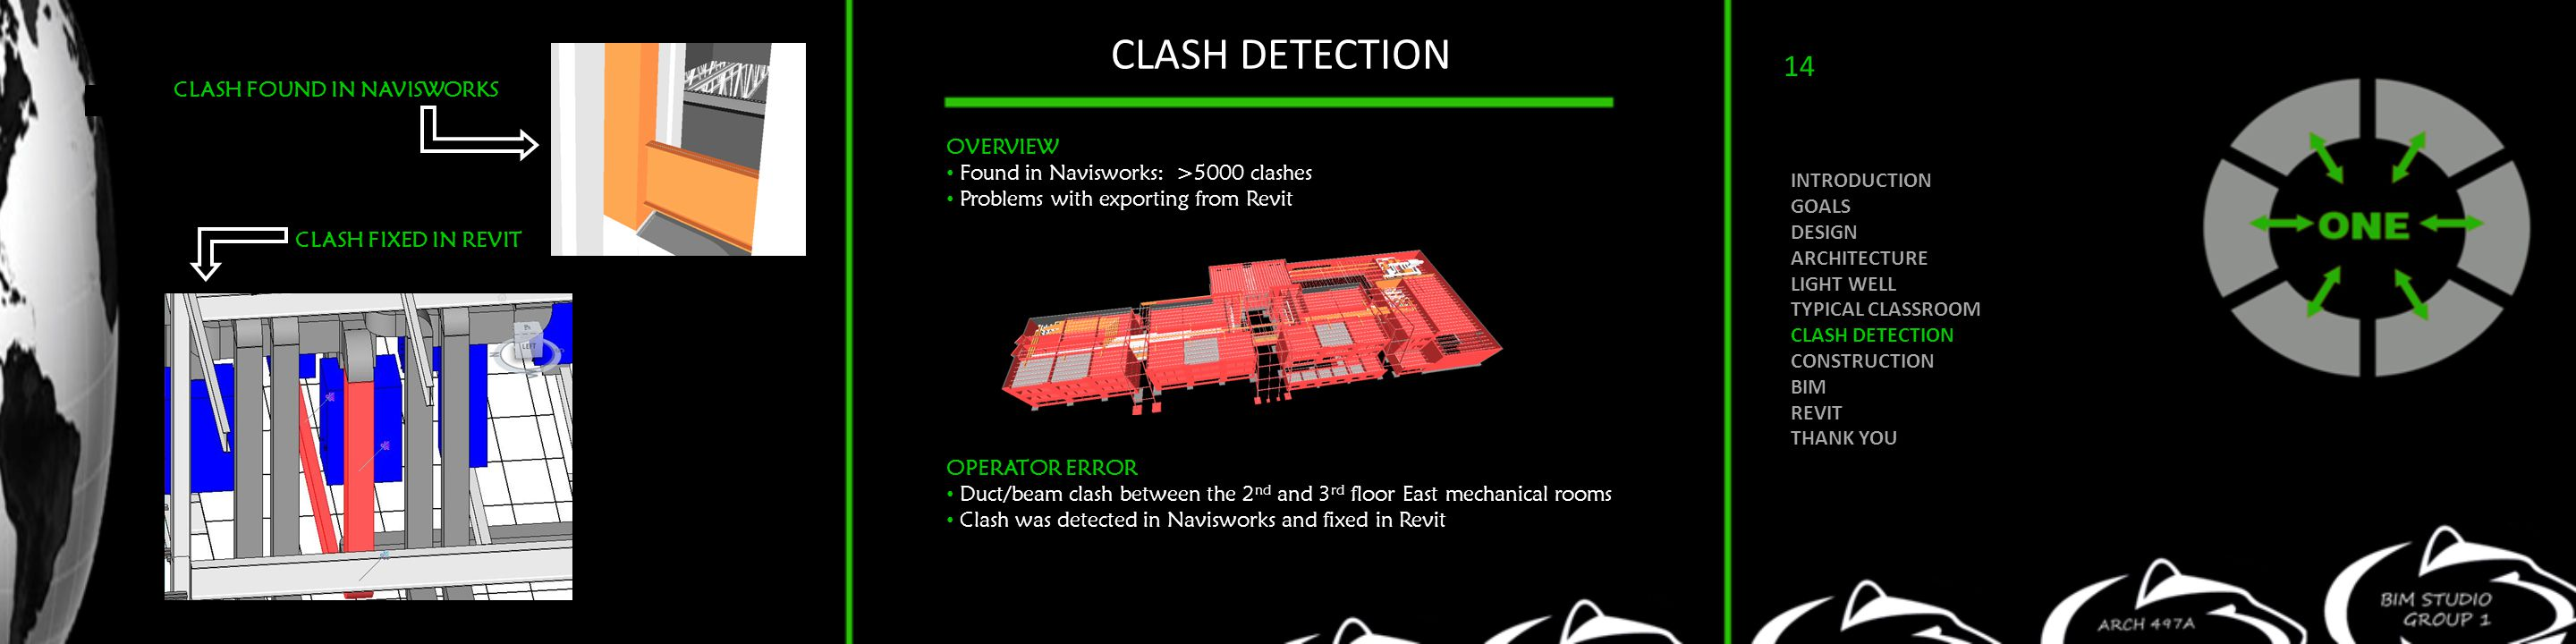 CLASH DETECTION OPERATOR ERROR Duct/beam clash between the 2 nd and 3 rd floor East mechanical rooms Clash was detected in Navisworks and fixed in Rev